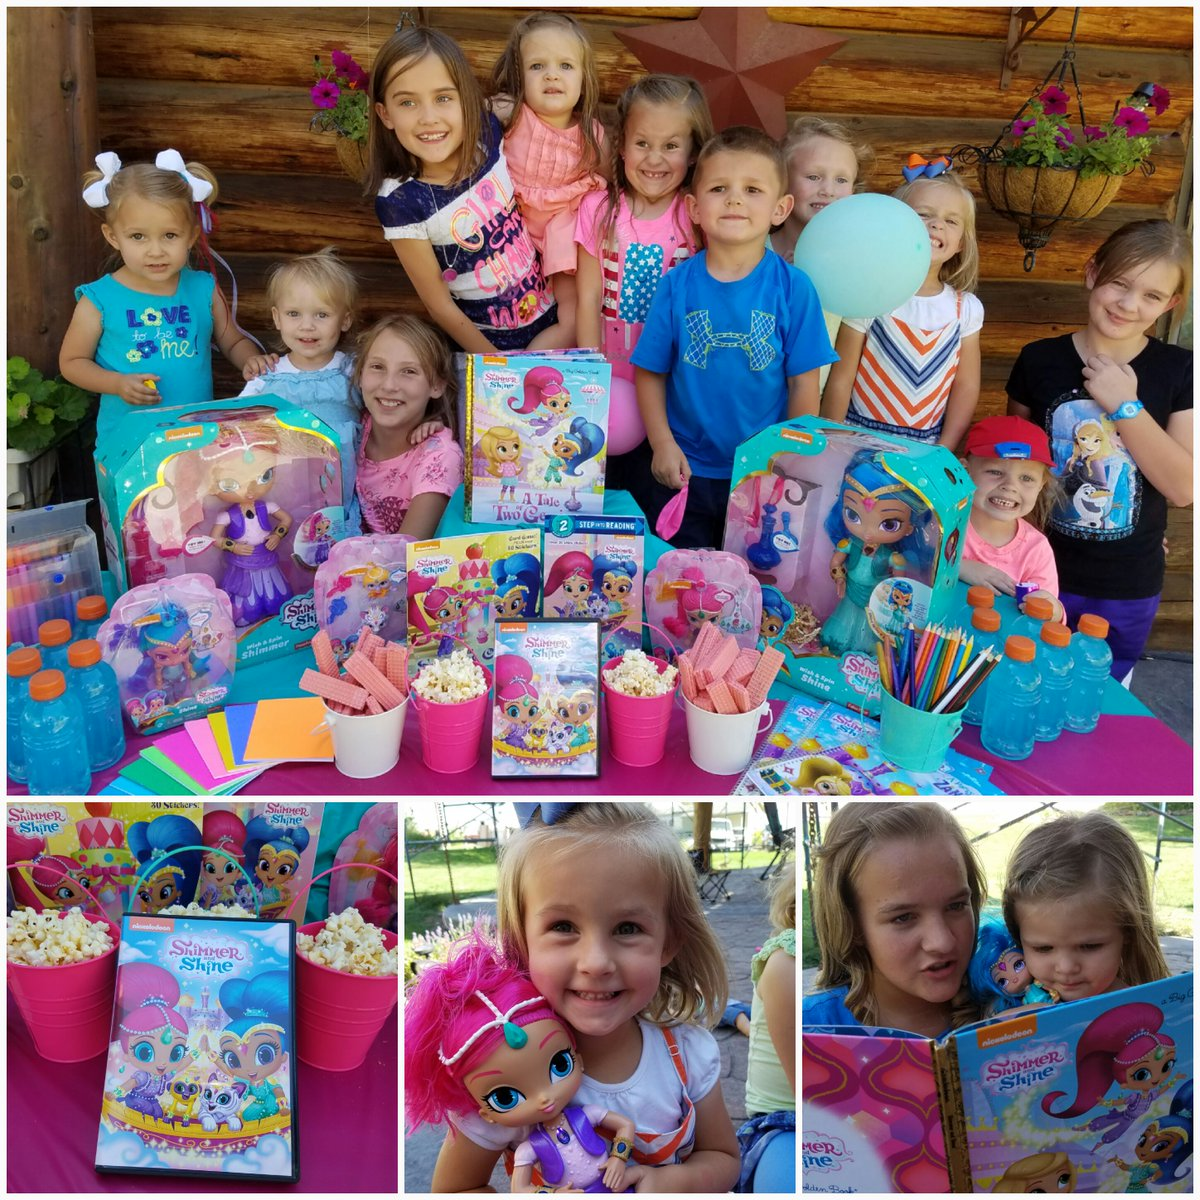 So much fun at our #ShimmerandShineParty kids were all smiles! Get free coloring pages https://t.co/RhKRVjczZn #ad https://t.co/T3FHtThPiA